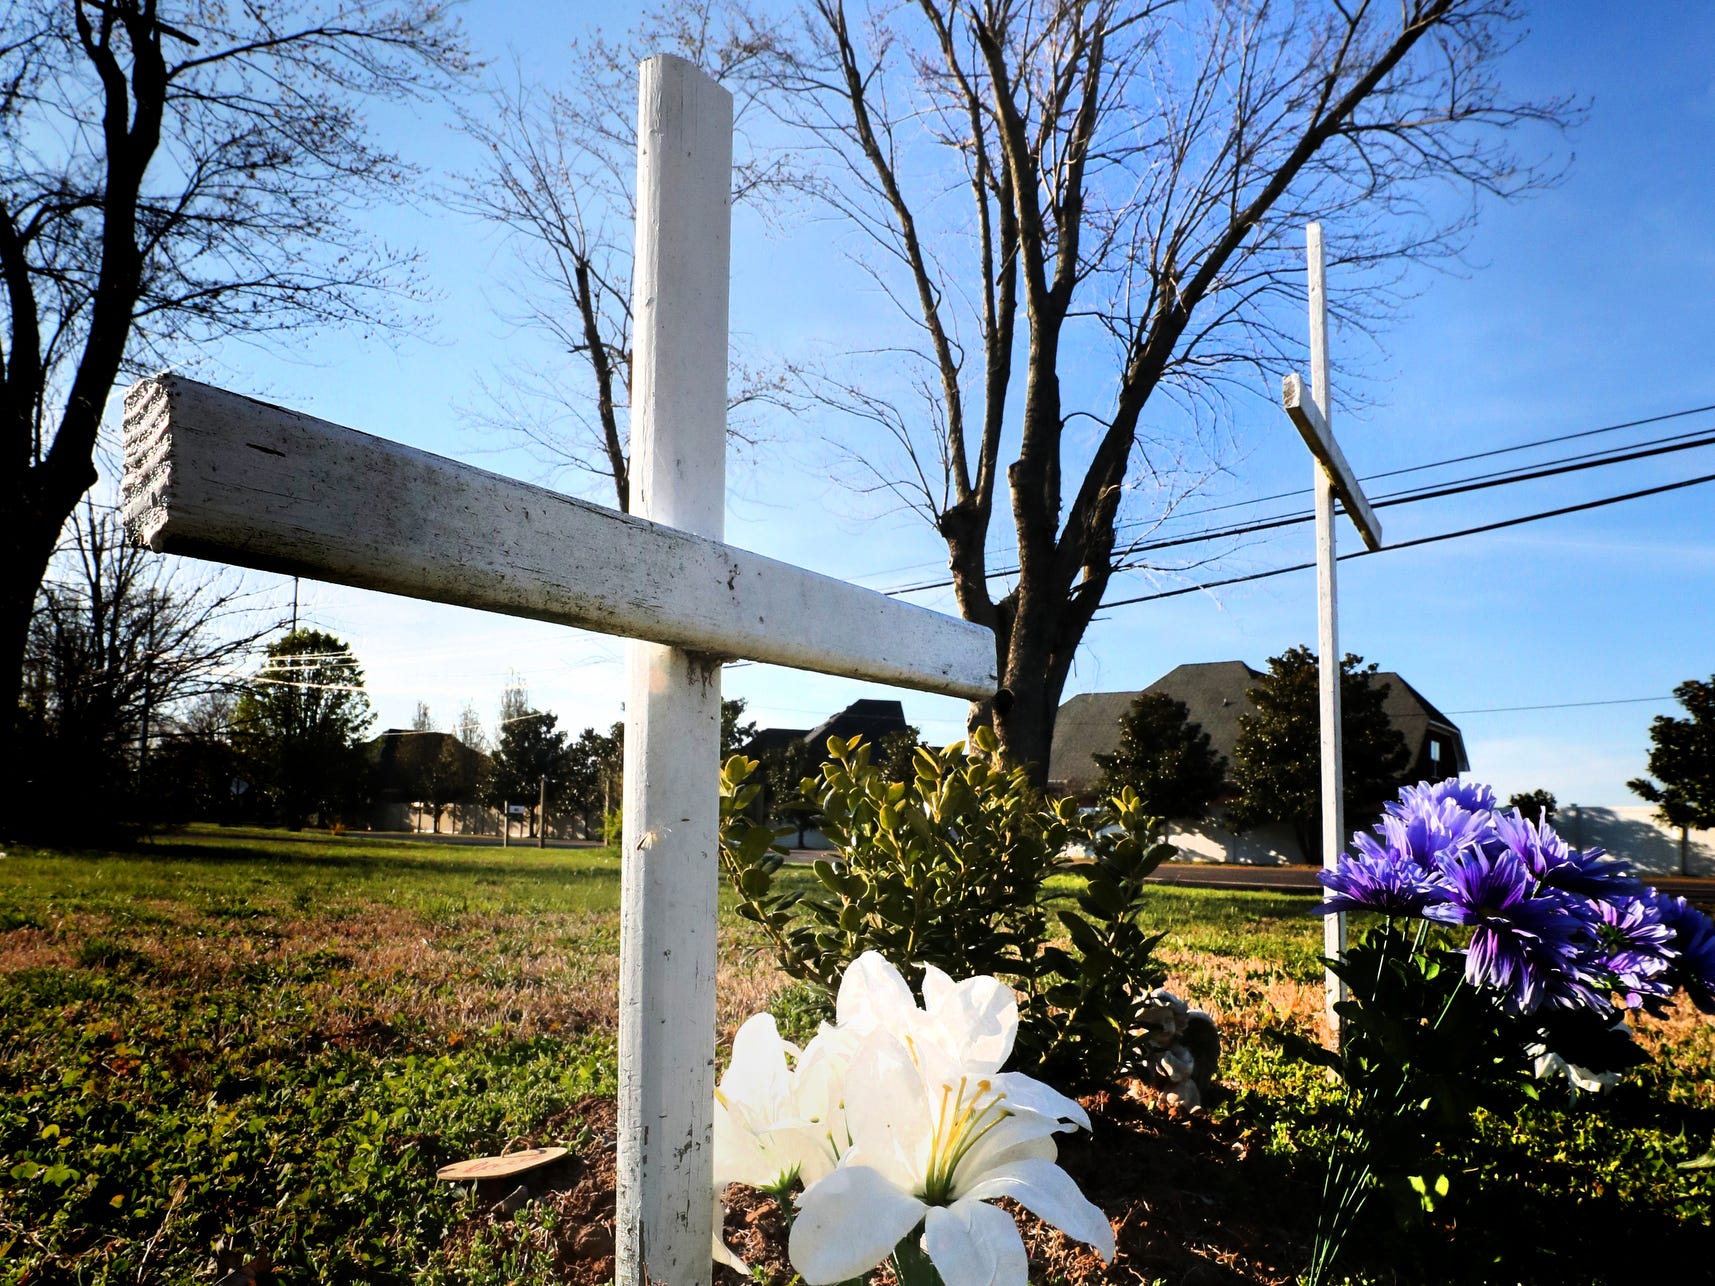 Two wooden crosses are on a plot of land at the corner of Sulphur Springs Road and Haynes Drive on Wednesday March 27, 2019, to remember 9 week-old Olivia Bryant and her mom Kori Bryant, who died due to the 2009 Good Friday tornado. The site marks the location of the house that was destroyed ten years ago where the two died in 2009.